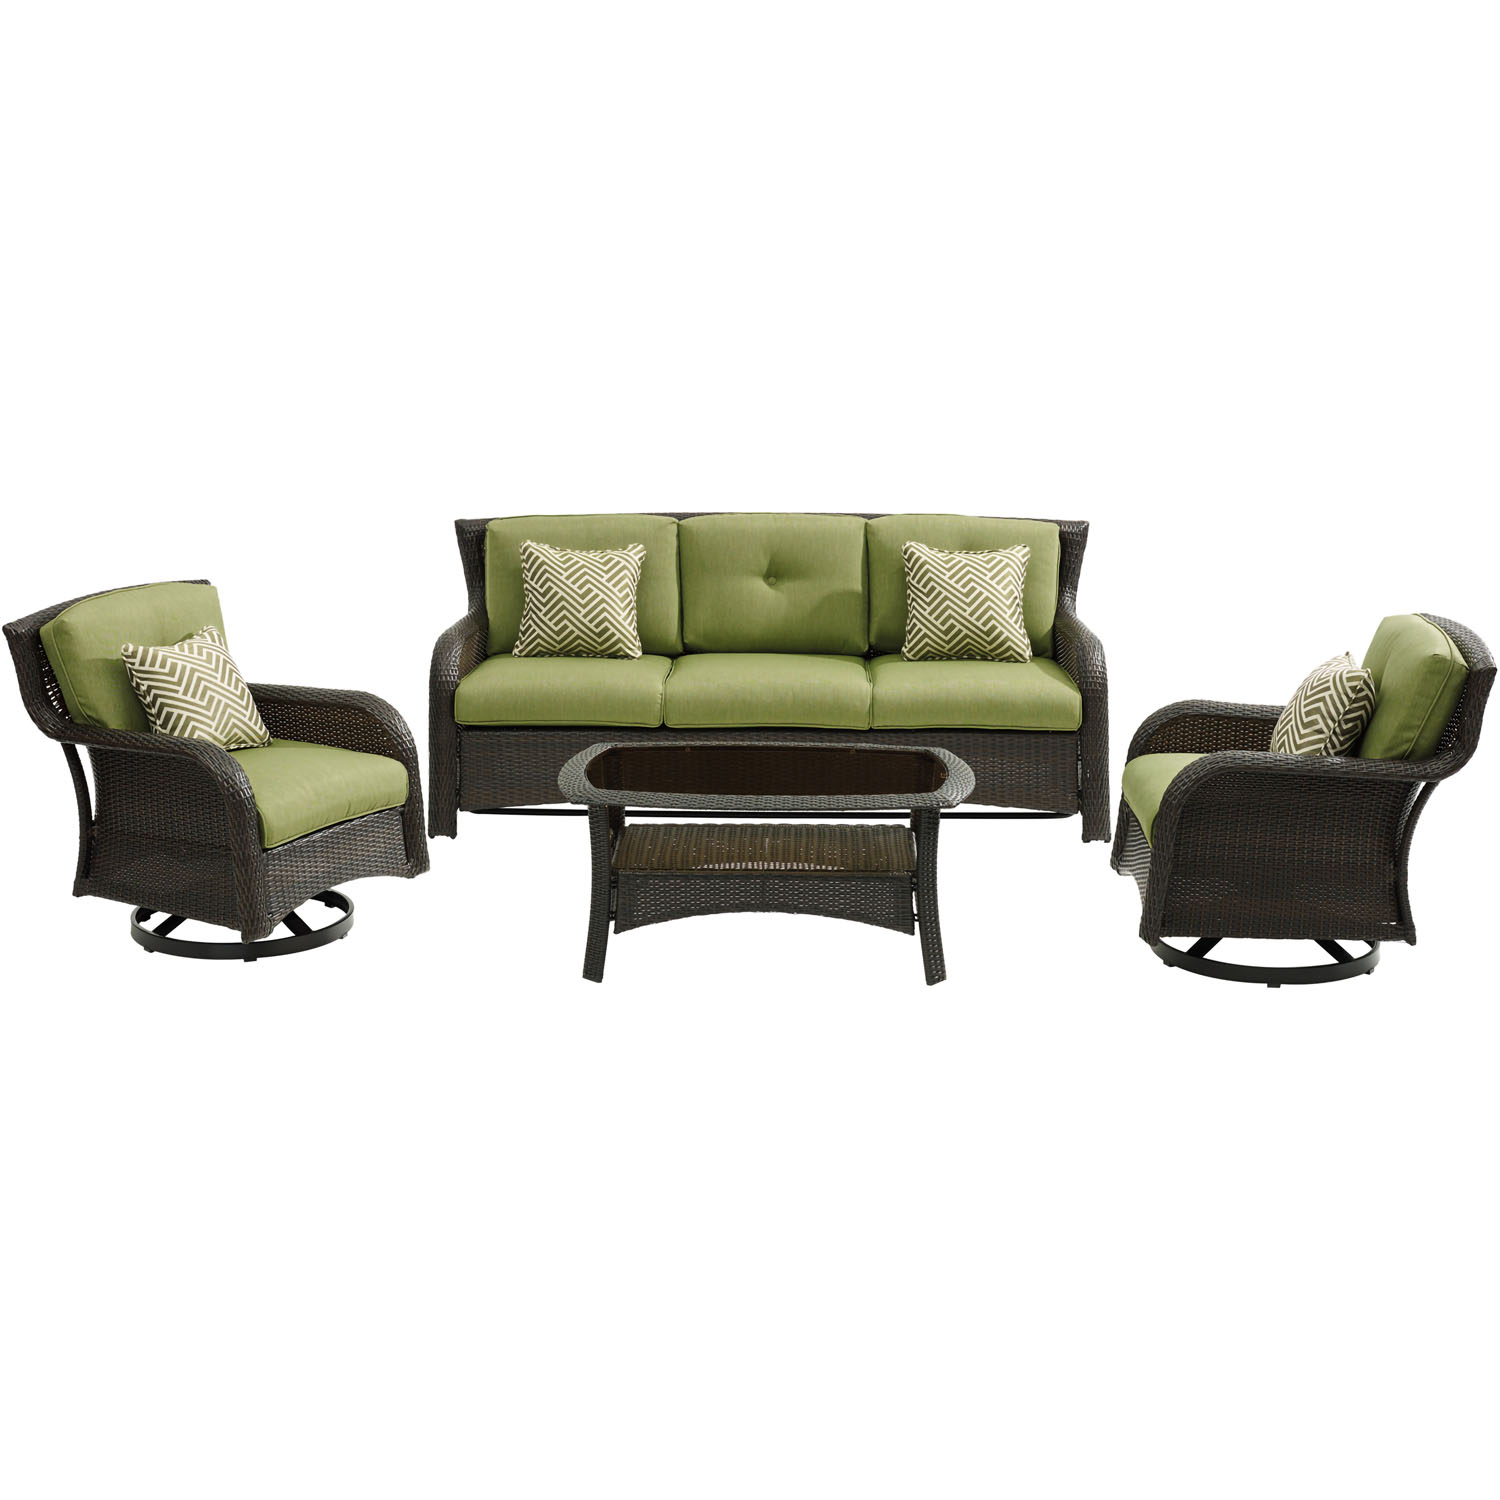 Hanover Strathmere 4-Piece Lounge Set in Cilantro Green